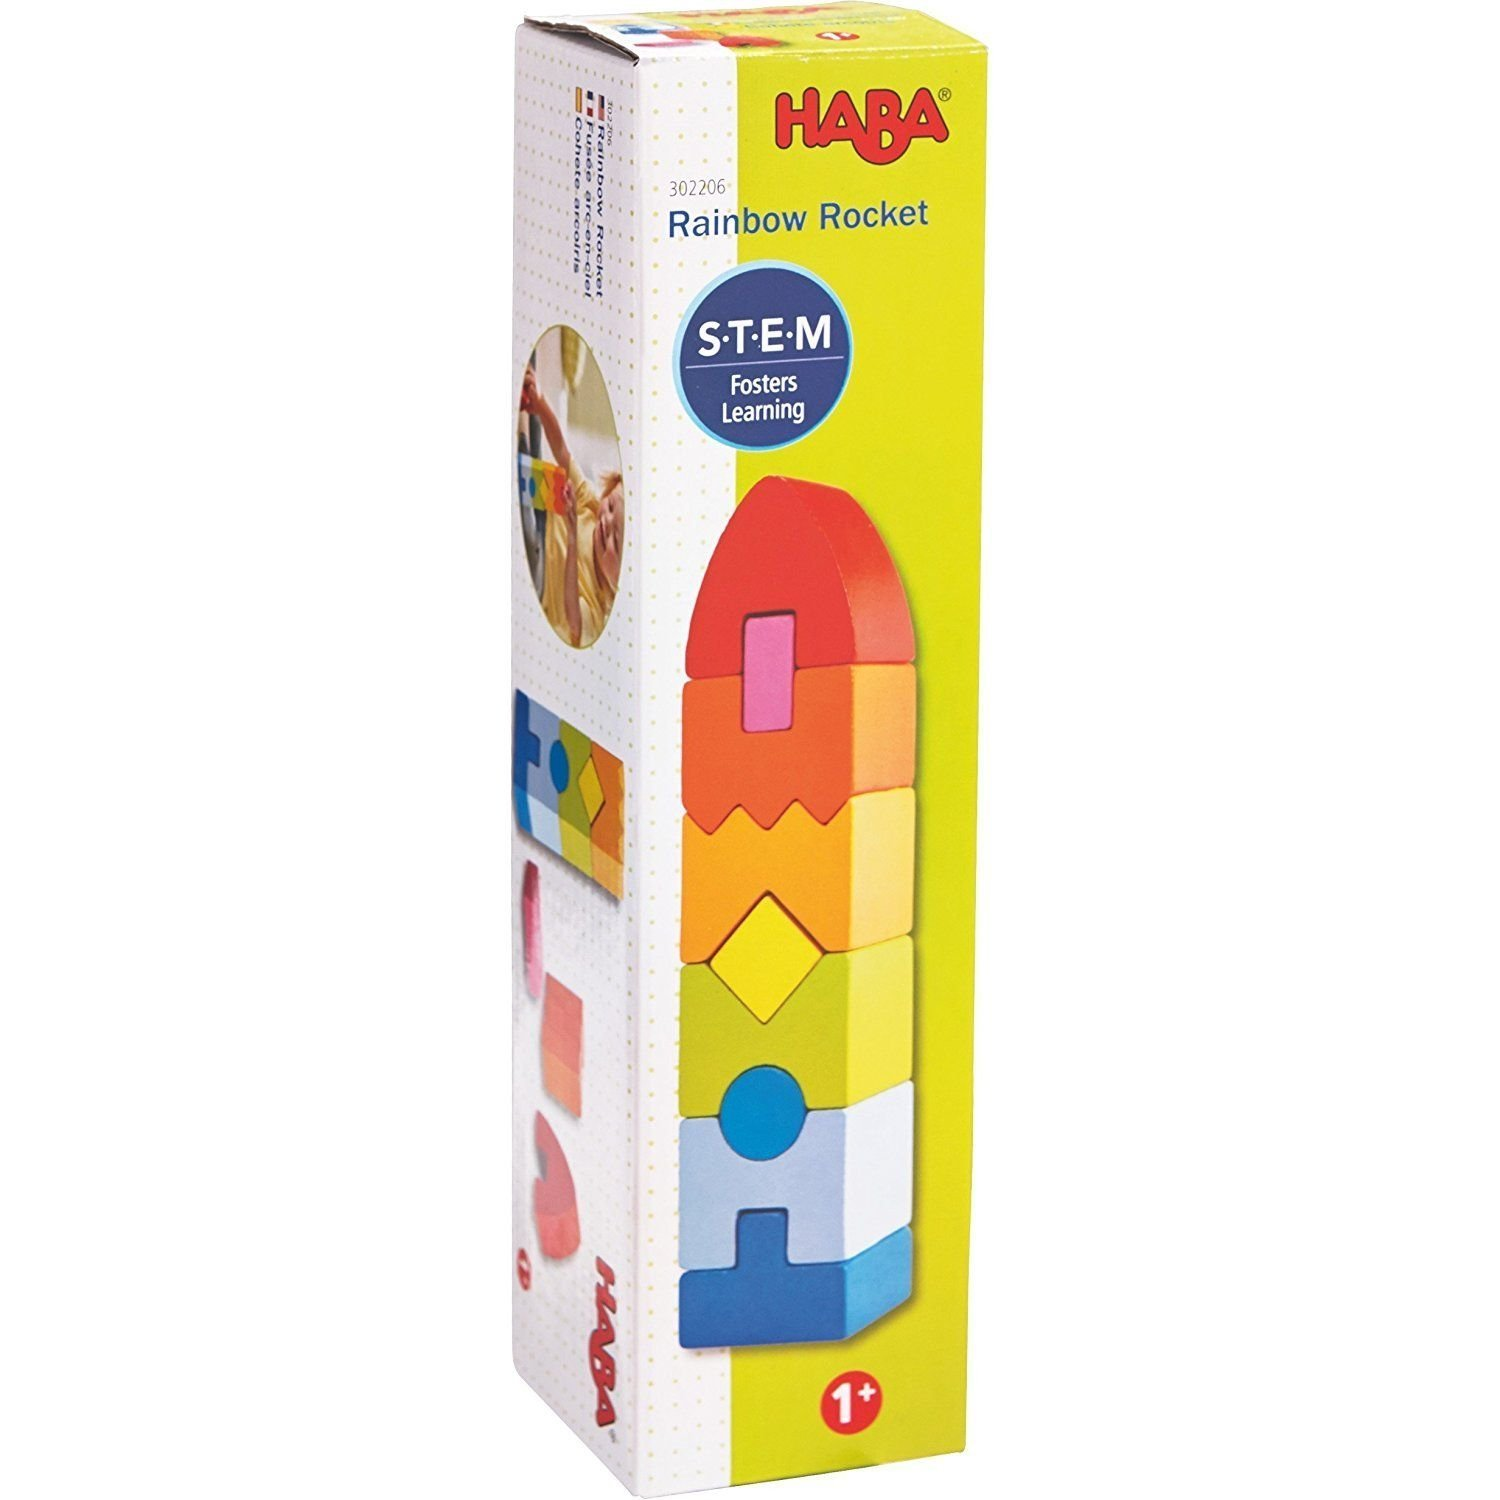 HABA Rainbow Rocket 9 Piece Wooden Stacking Play Set for Ages 1 and Up